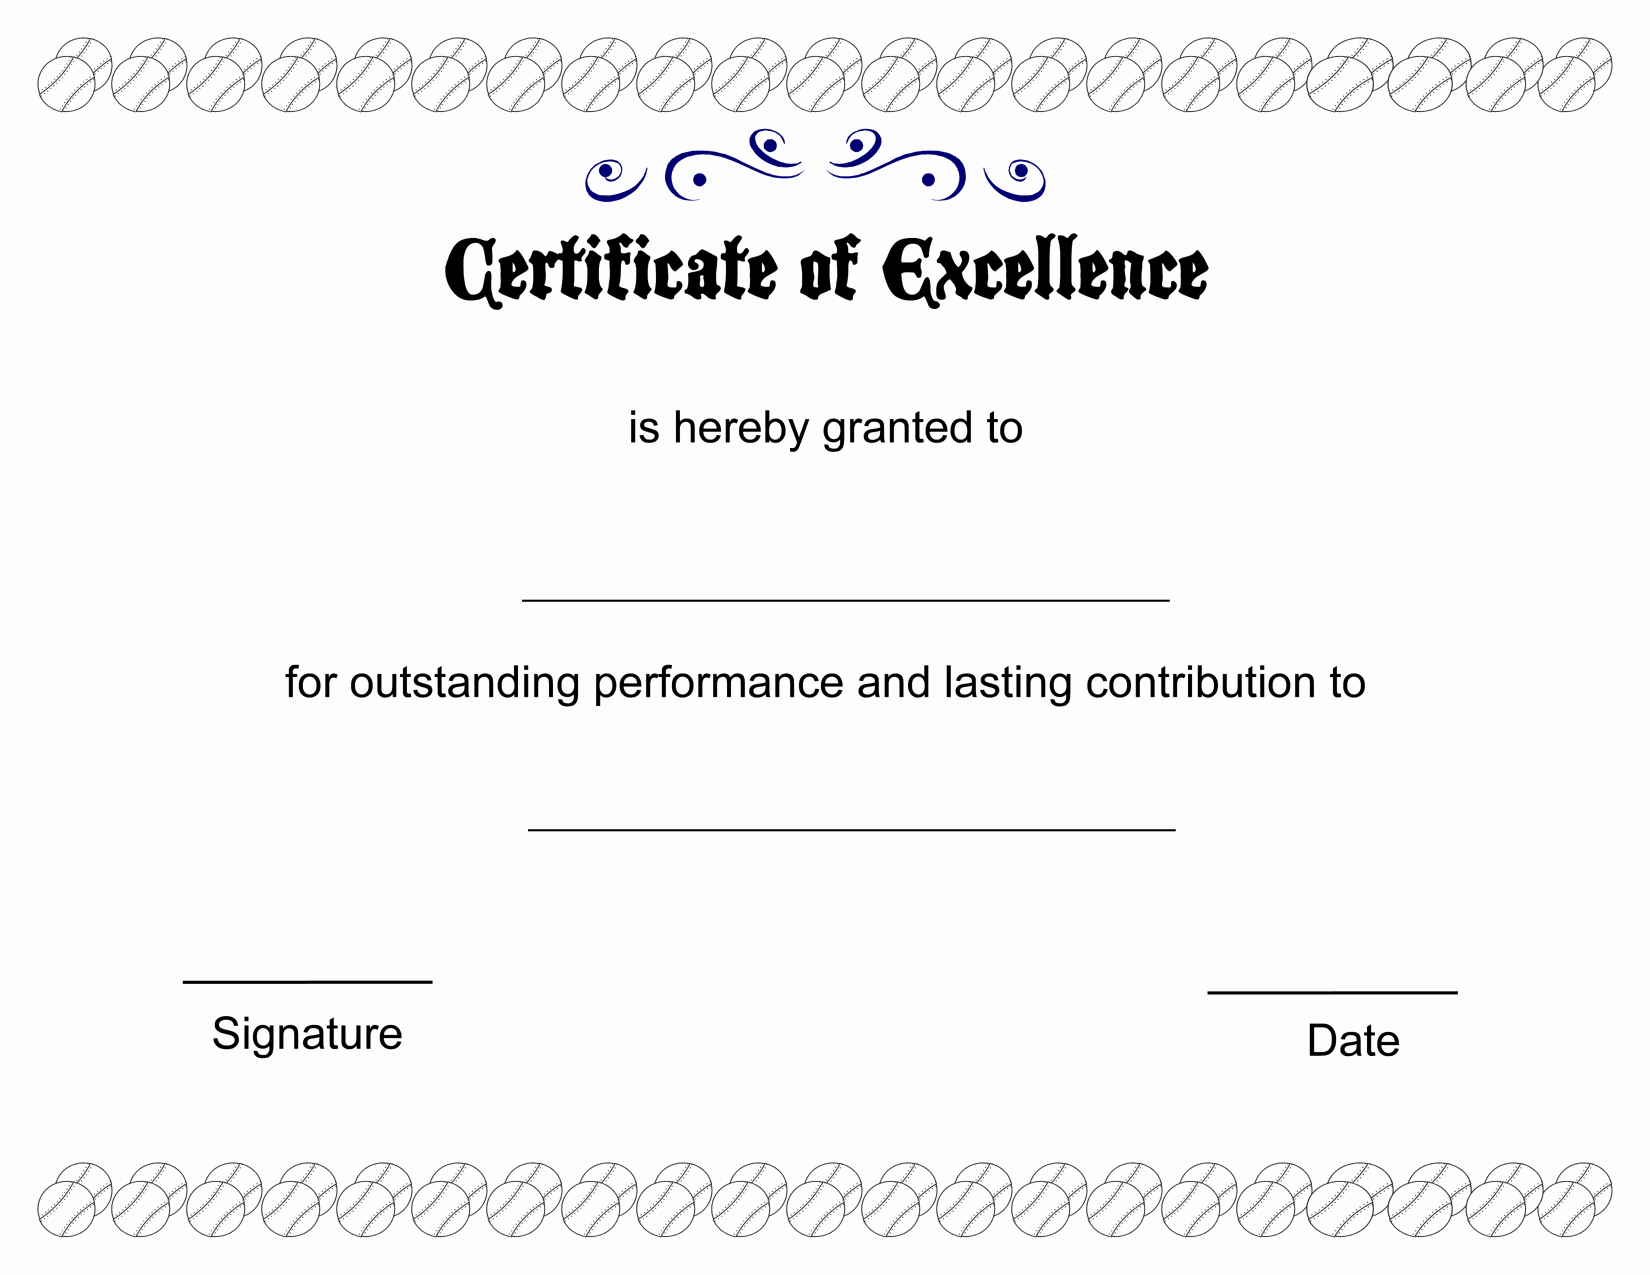 Printable Certificate Of Excellence Awesome Printable Pdfs Certificate Of Excellence Template